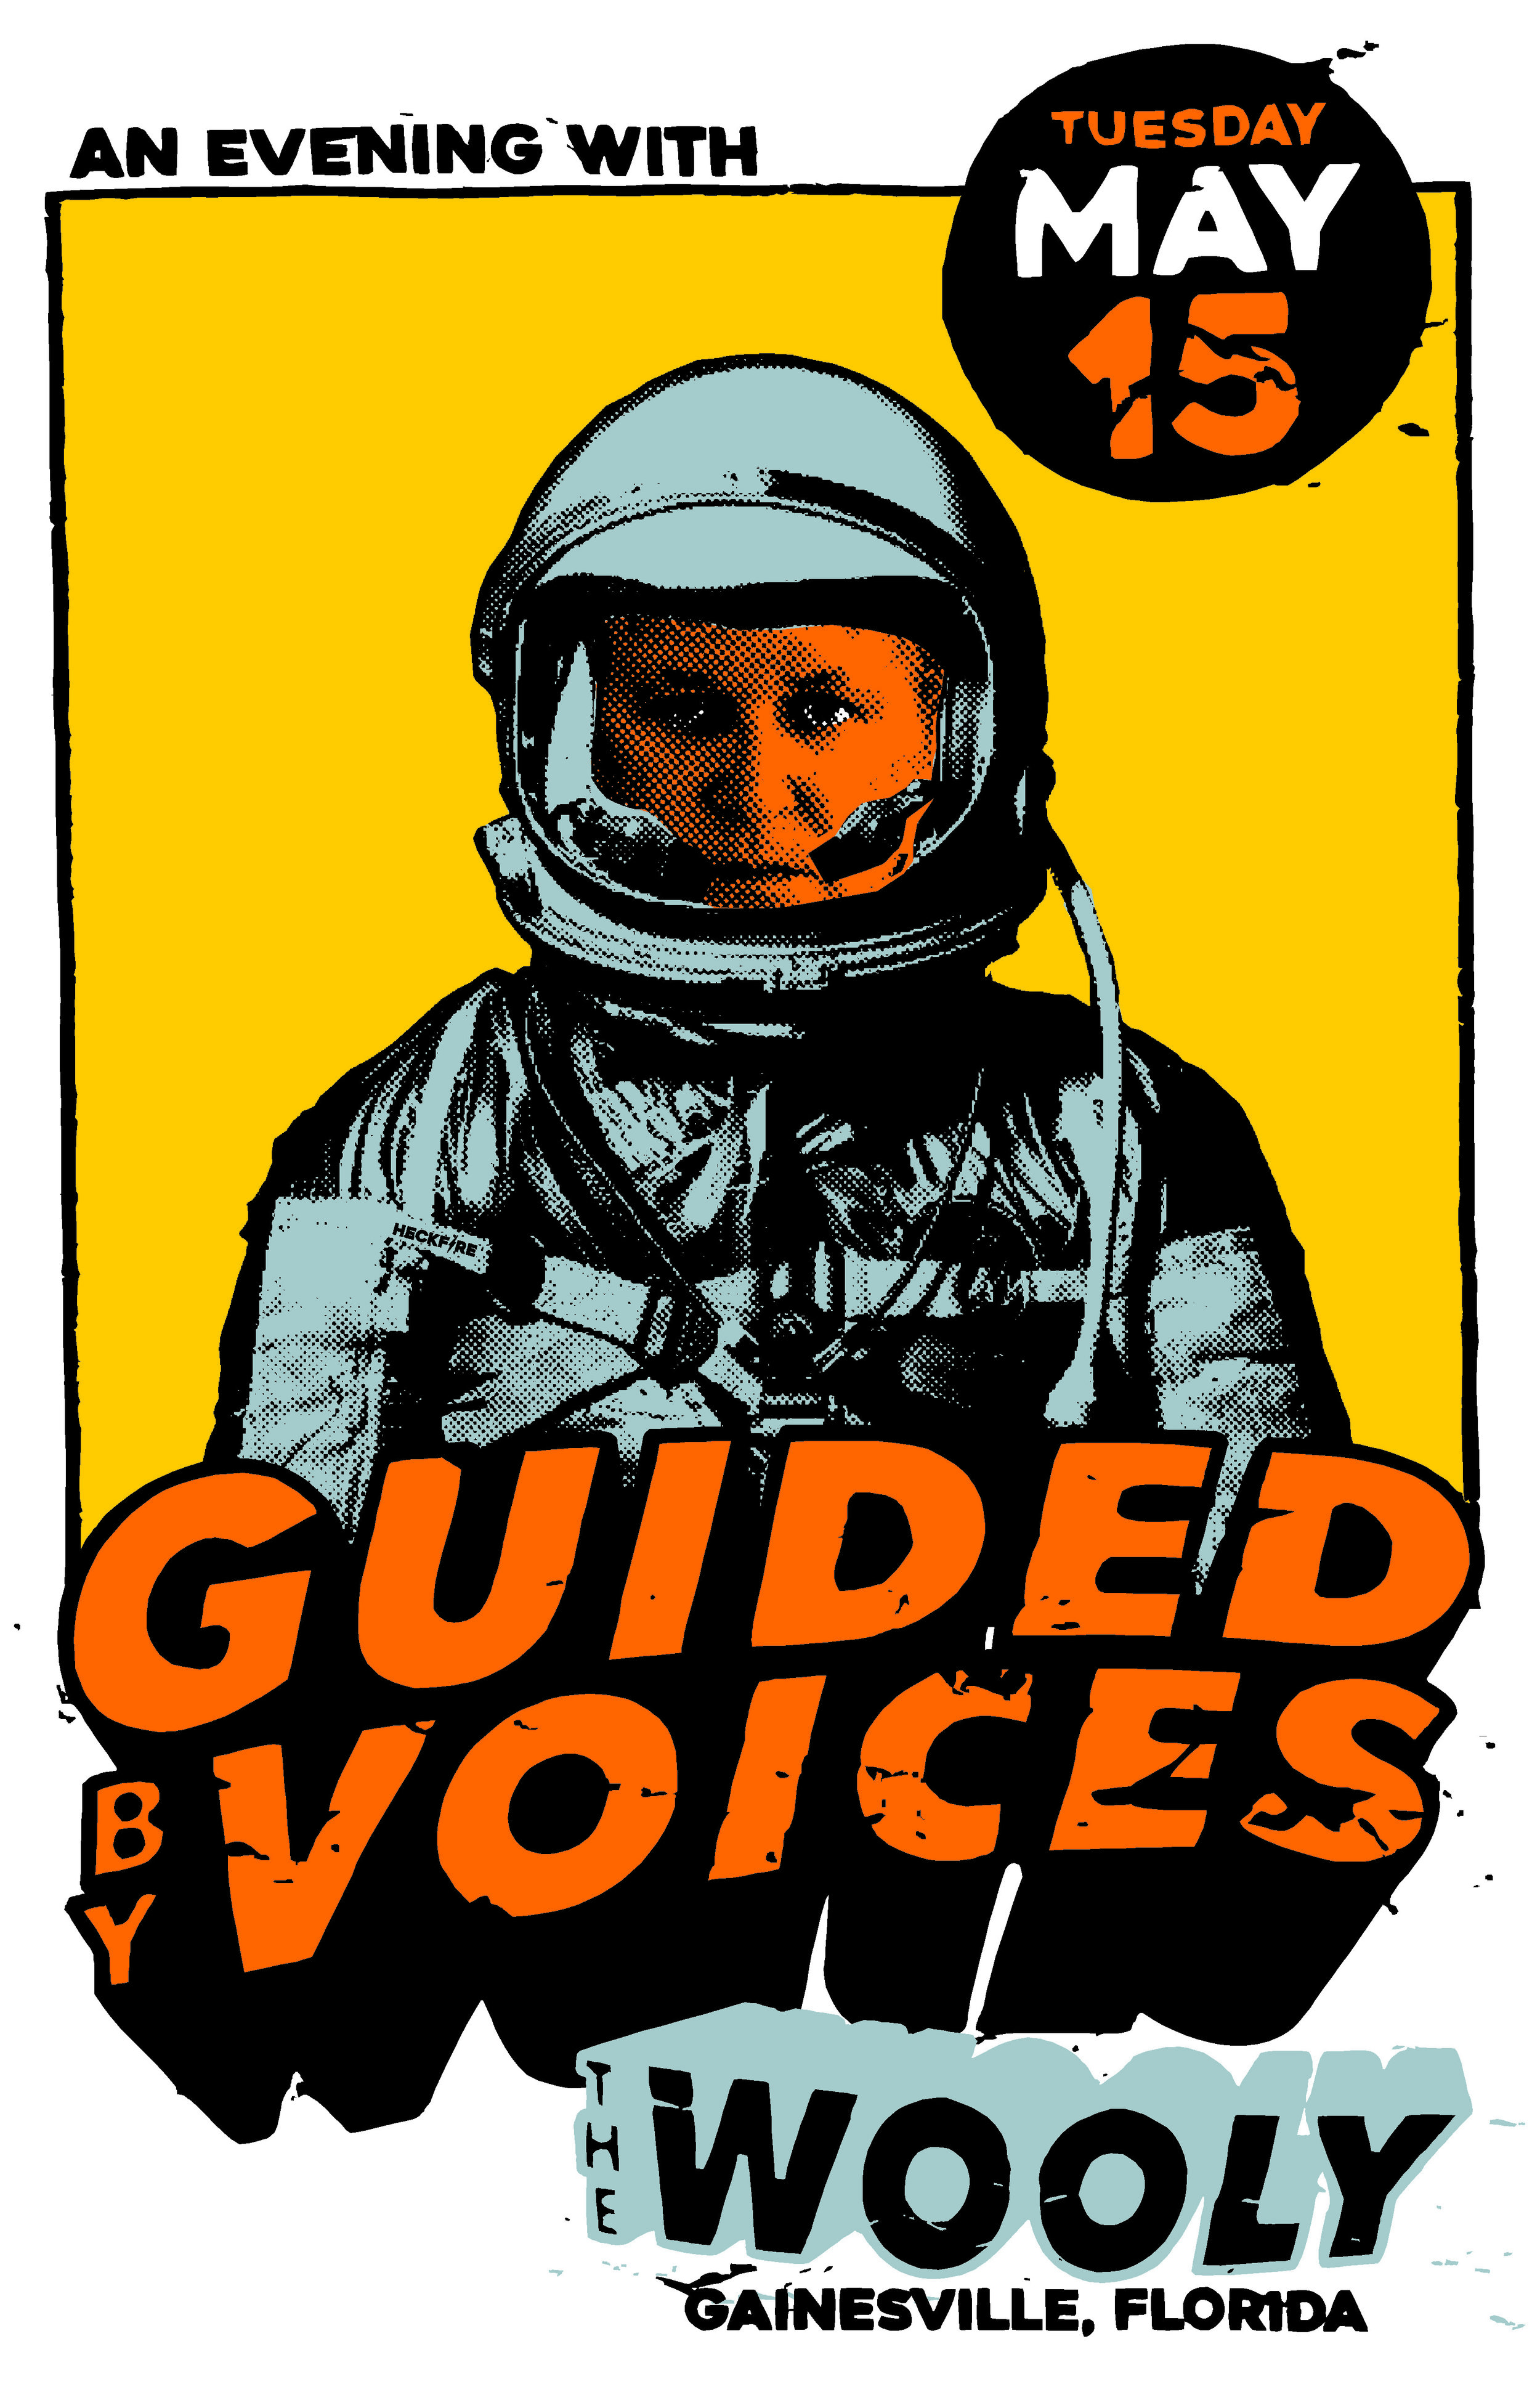 "Tuesday, May 15th  Motorbreath GVL  Presents: An Evening With:  Guided By Voices     http://www.gbv.com/   https://twitter.com/_GuidedByVoices   https://www.instagram.com/instagbv/   Doors at 7pm $25adv/$30dos  ////////////////////////// Twenty-two years ago in 1994, 38-year-old school teacher Robert Pollard & his merry band recorded Bee Thousand in a Dayton, Ohio basement on a 4-track cassette recorder. This improbable rock classic became an enormously influential album; Spin and Pitchfork have called it one of the best records of the '90s, and Amazon picked Bee Thousand as #1 on their list of the 100 Greatest Indie Rock Albums Of All Time. An amazing live band with a rabid following, the Washington Post called GBV ""the Grateful Dead equivalent for people who like Miller Lite instead of acid!""  GBV's new line-up re-unites Robert Pollard with former bandmembers Doug Gillard and Kevin March, along with exciting newcomers Mark Shue and Bobby Bare Jr. The group has been wowing audiences from coast to coast following fantastic new albums How Do You Spell Heaven and August By Cake (Robert Pollard's 100th release!)"